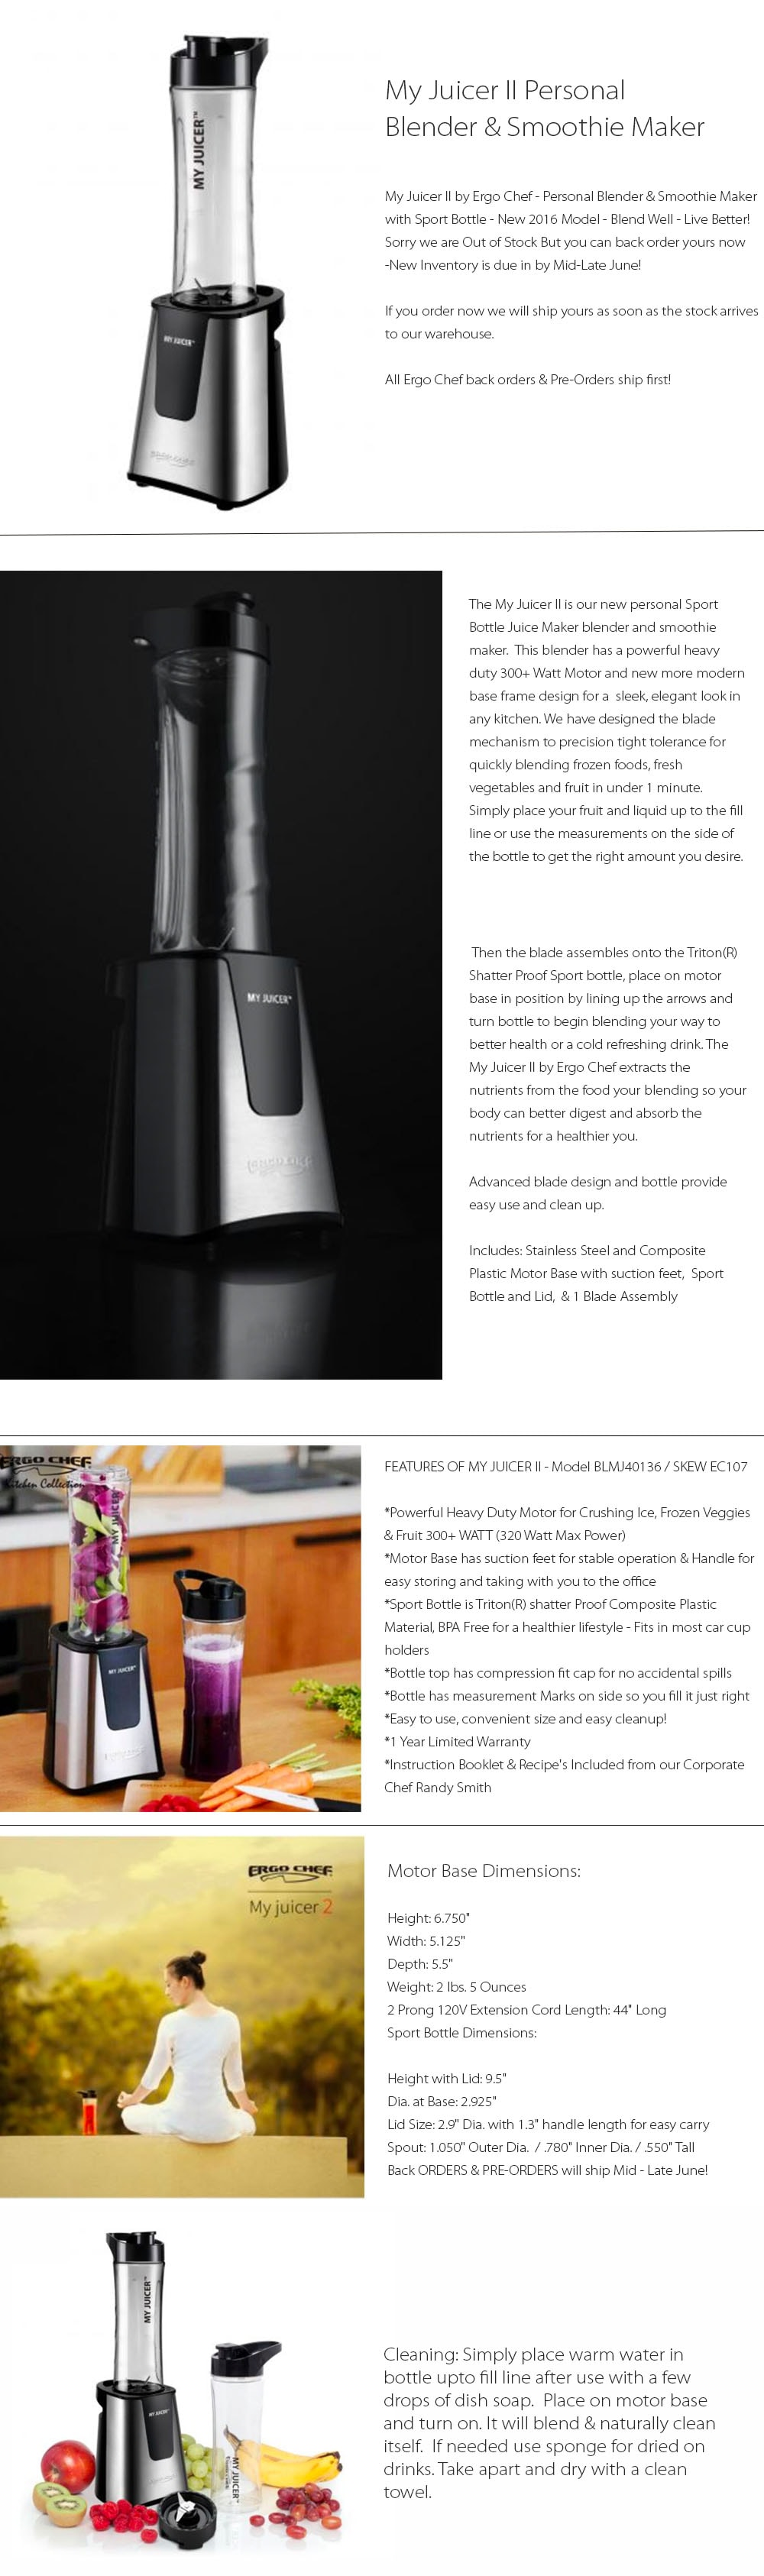 My Juicer II Personal Blender & Smoothie Maker Make Yourself Fresh Blended Juice